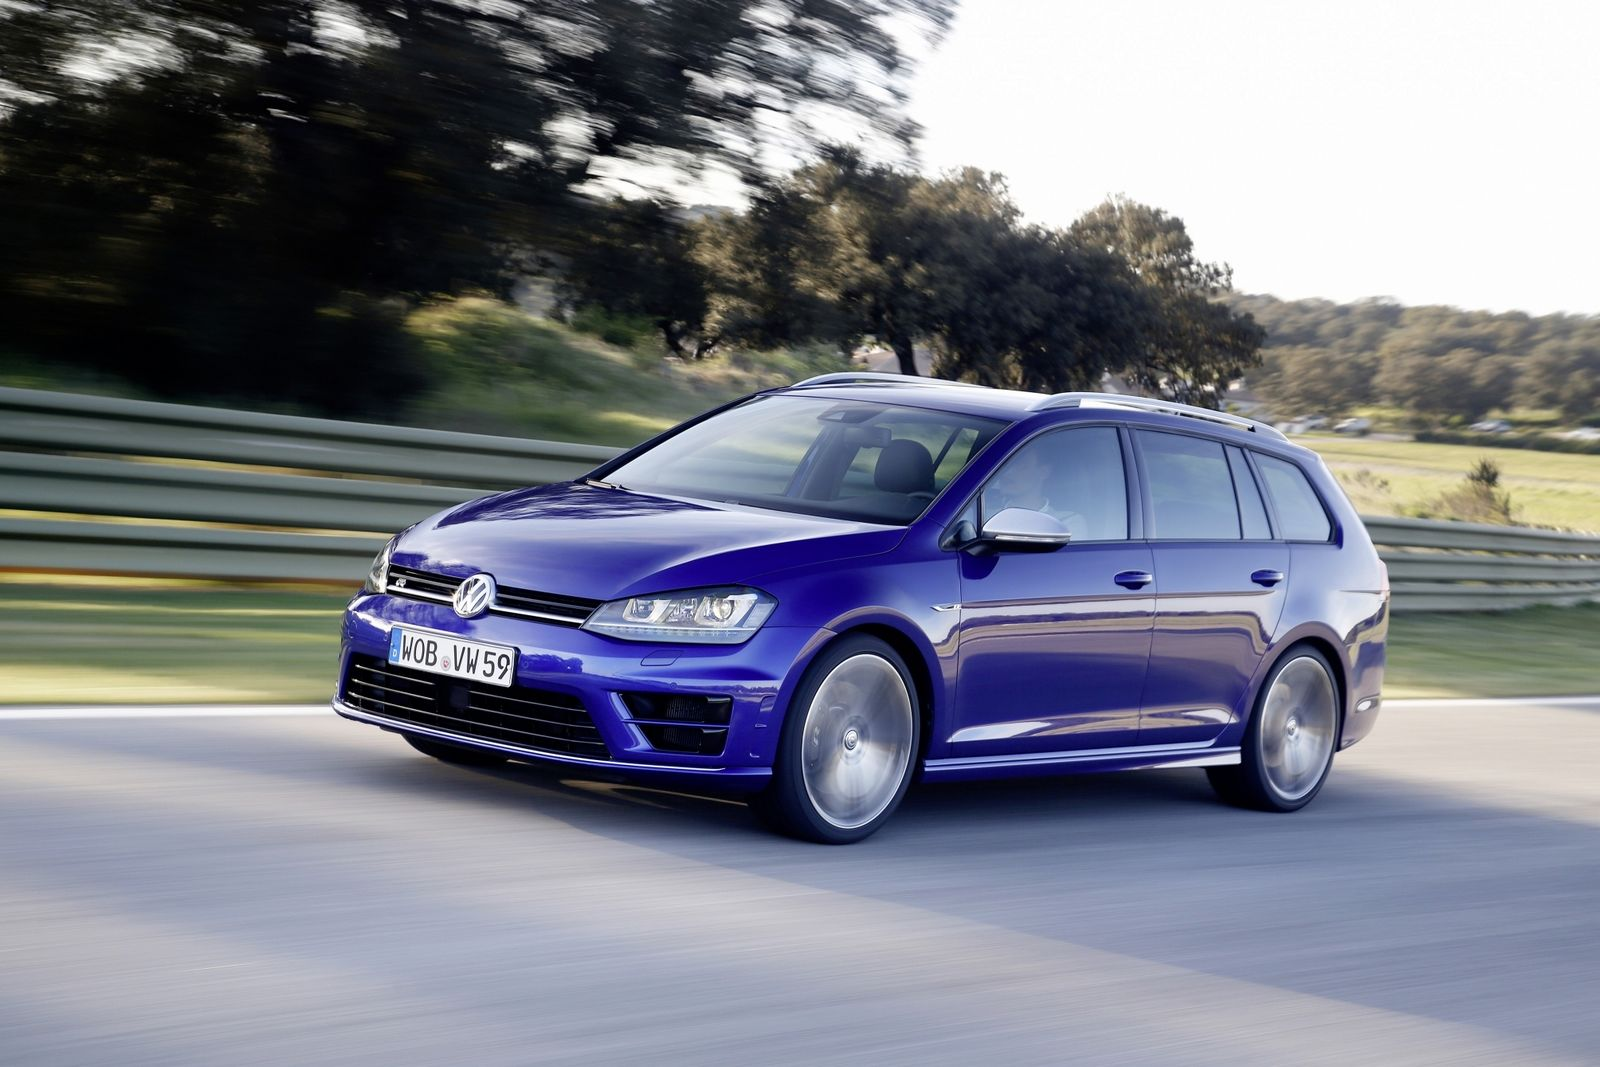 La Volkswagen Golf SW R arrive finalement en France